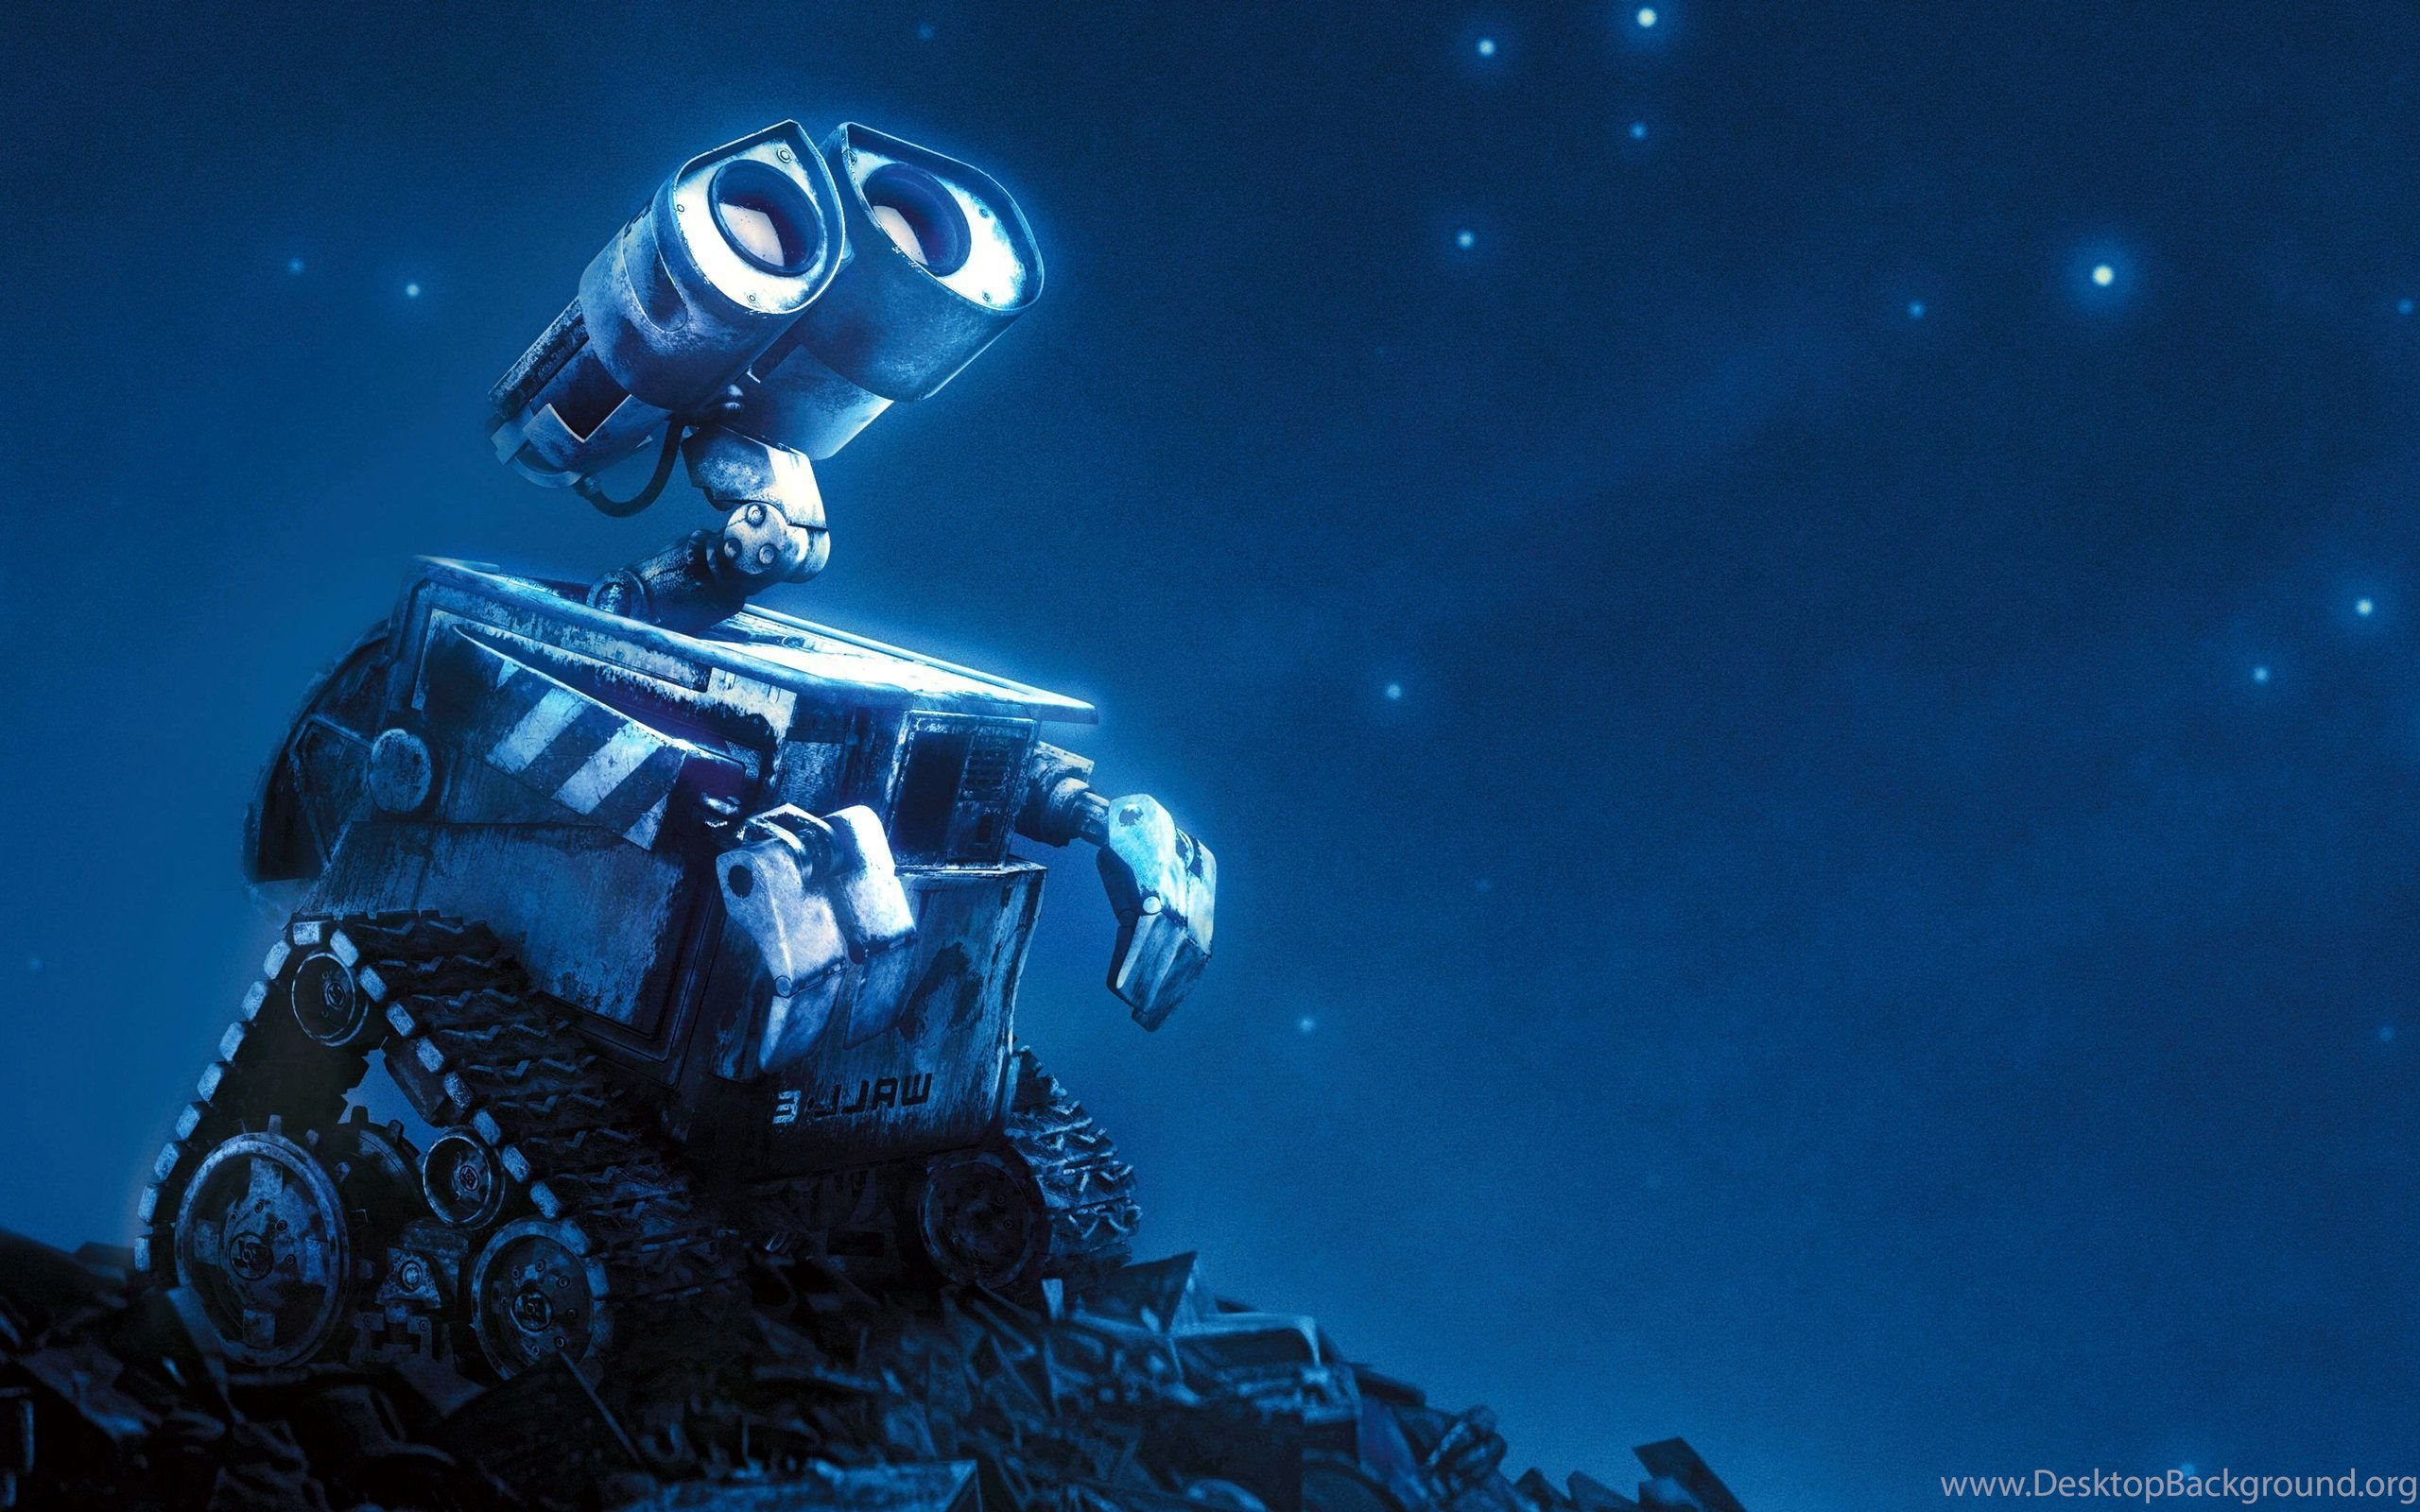 pixar animated movie wall e hd wallpaper desktop background